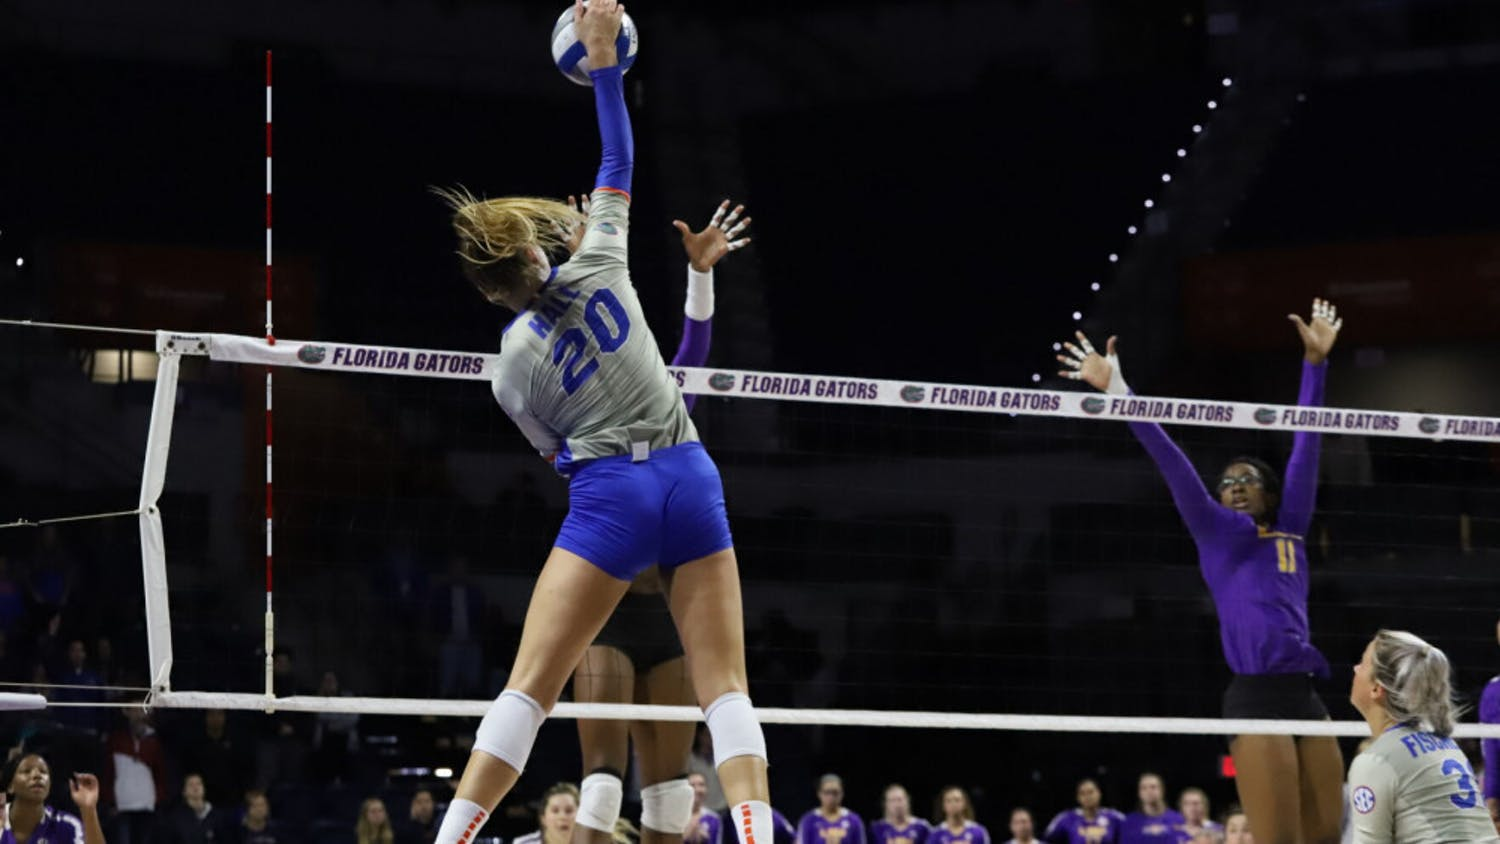 Florida's Thayer Hall spikes a ball against LSU in 2019. Hall recorded 13 kills in a 3-1 loss to No. 17 Baylor Friday night.